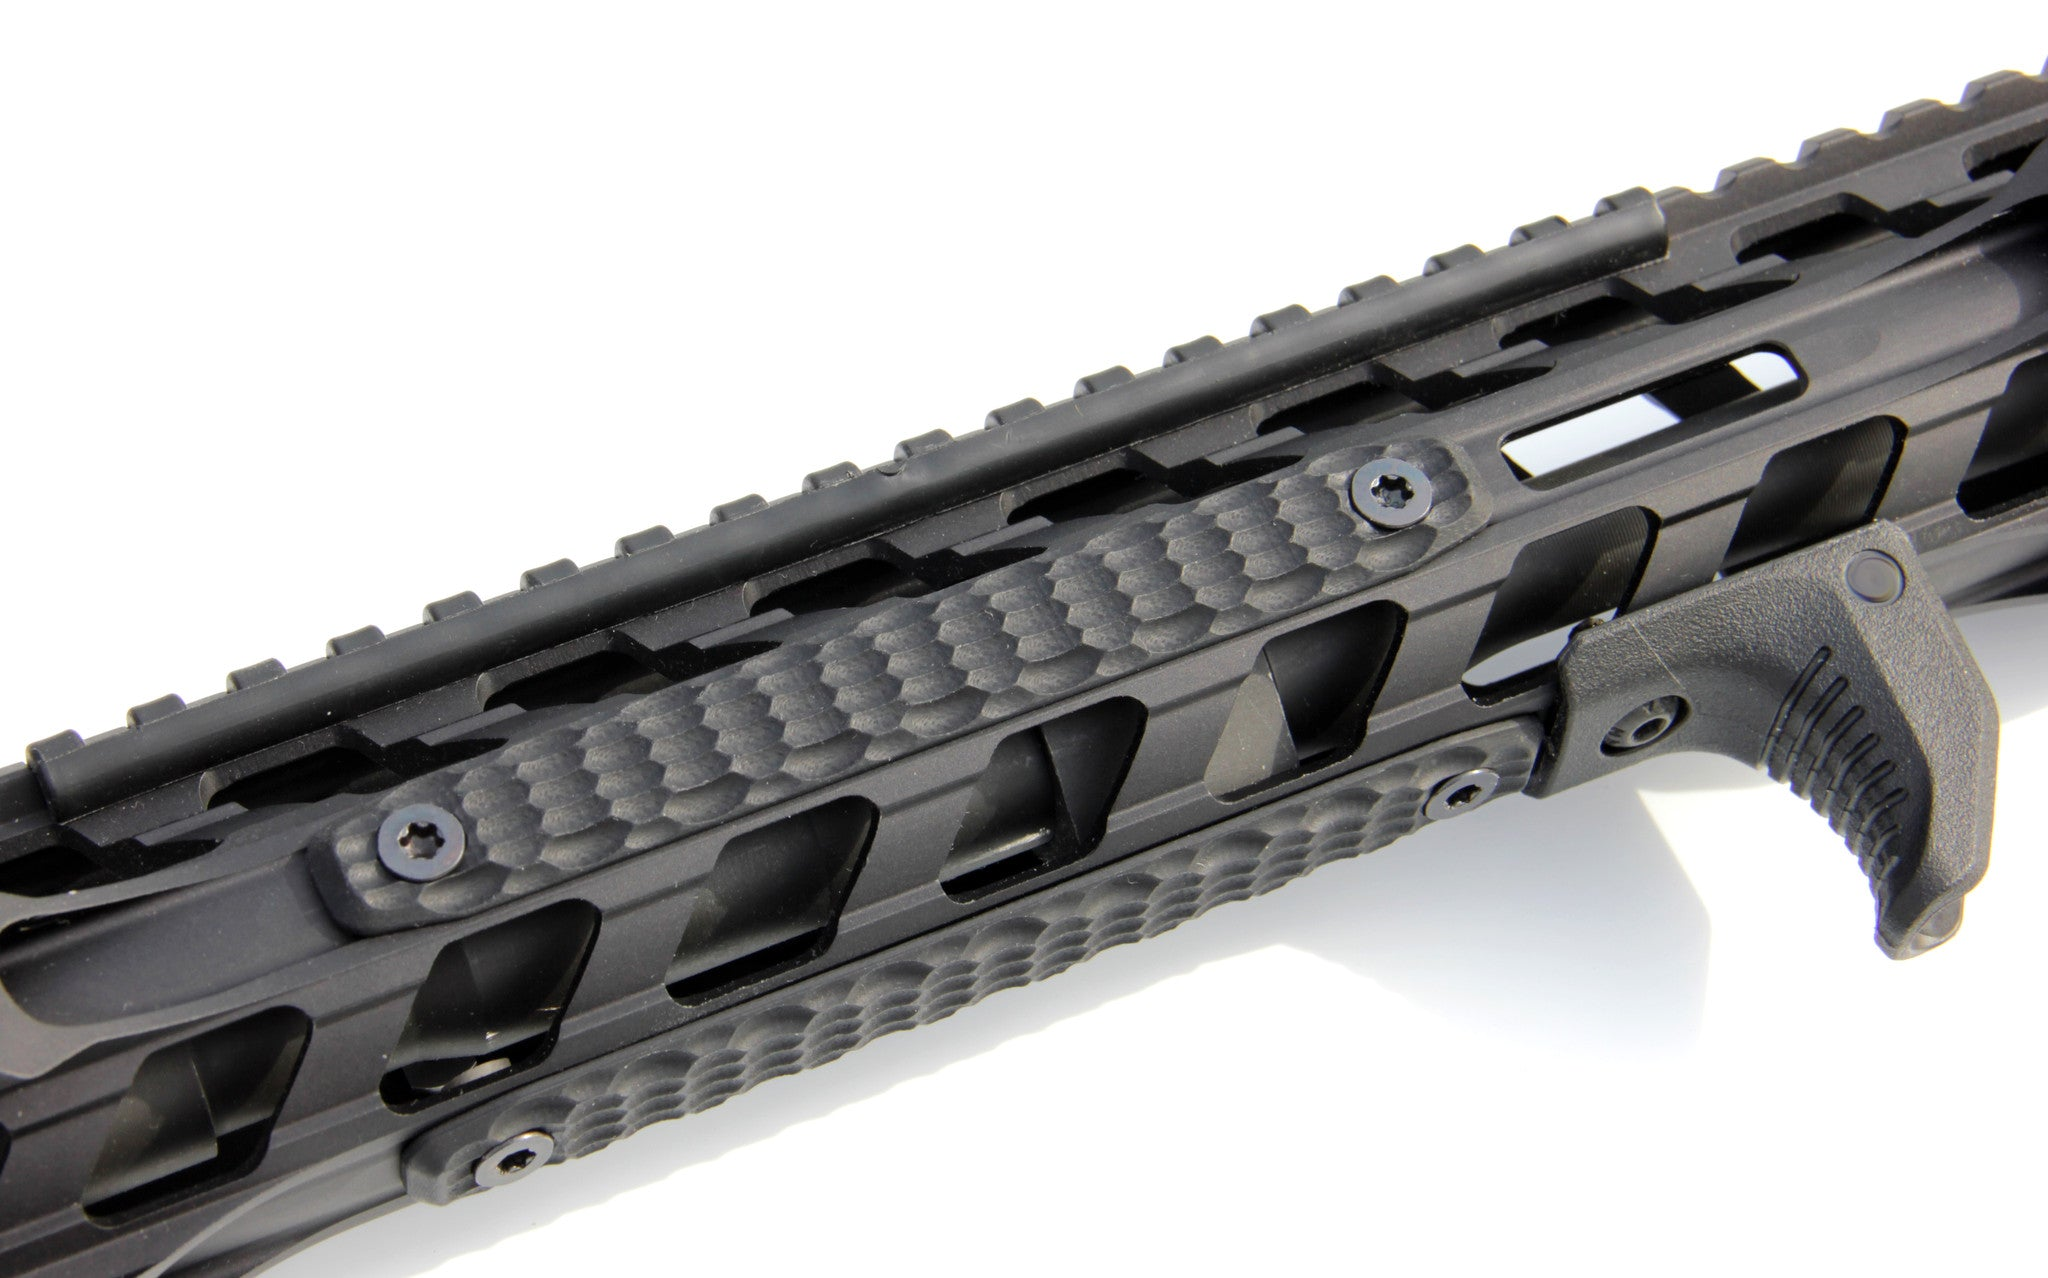 Mechforce G10 Scale Hand Grip Panel for MLok Rail Handguard Cover, 3 S